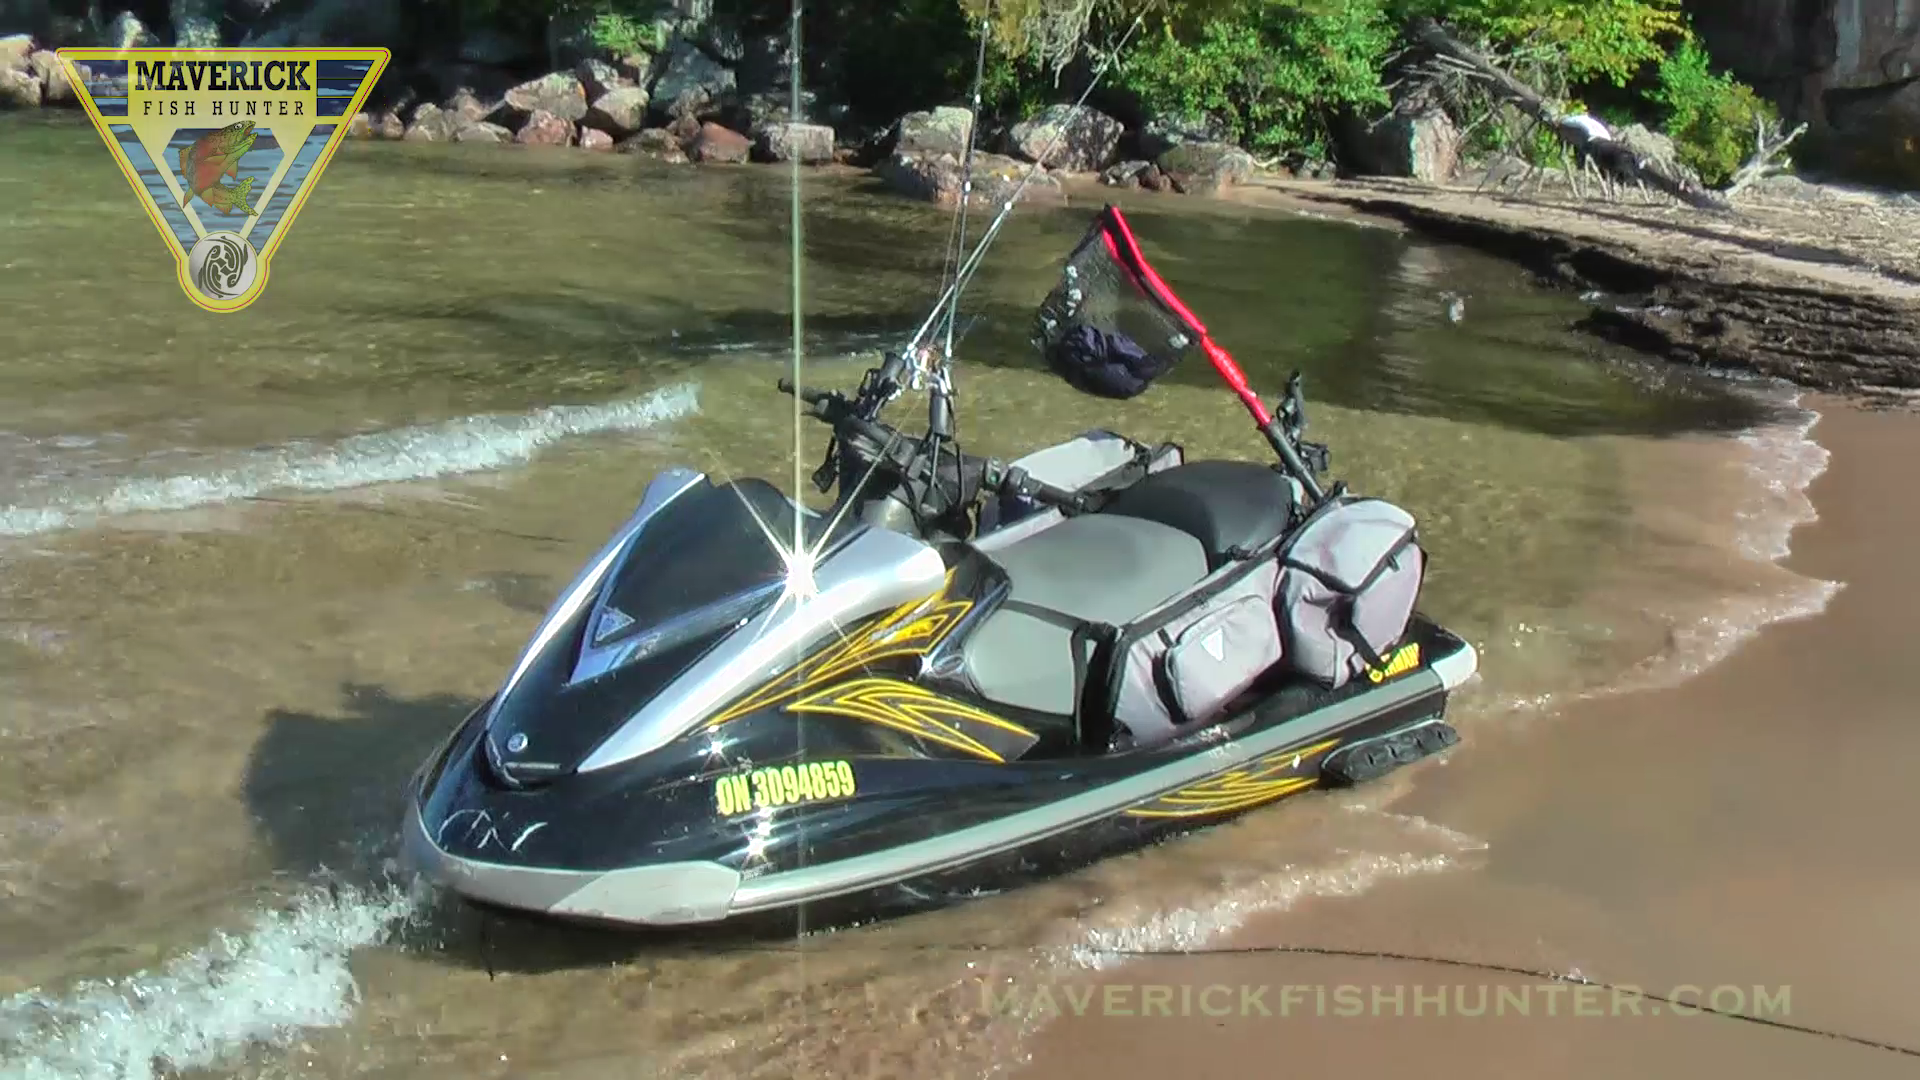 If Your Looking To Get Into Pwc Jetski Fishing Maverick Bags And Brackets Are The Ticket This Is The Safest And Most Eco Jet Ski Fishing Fishing Store Skiing